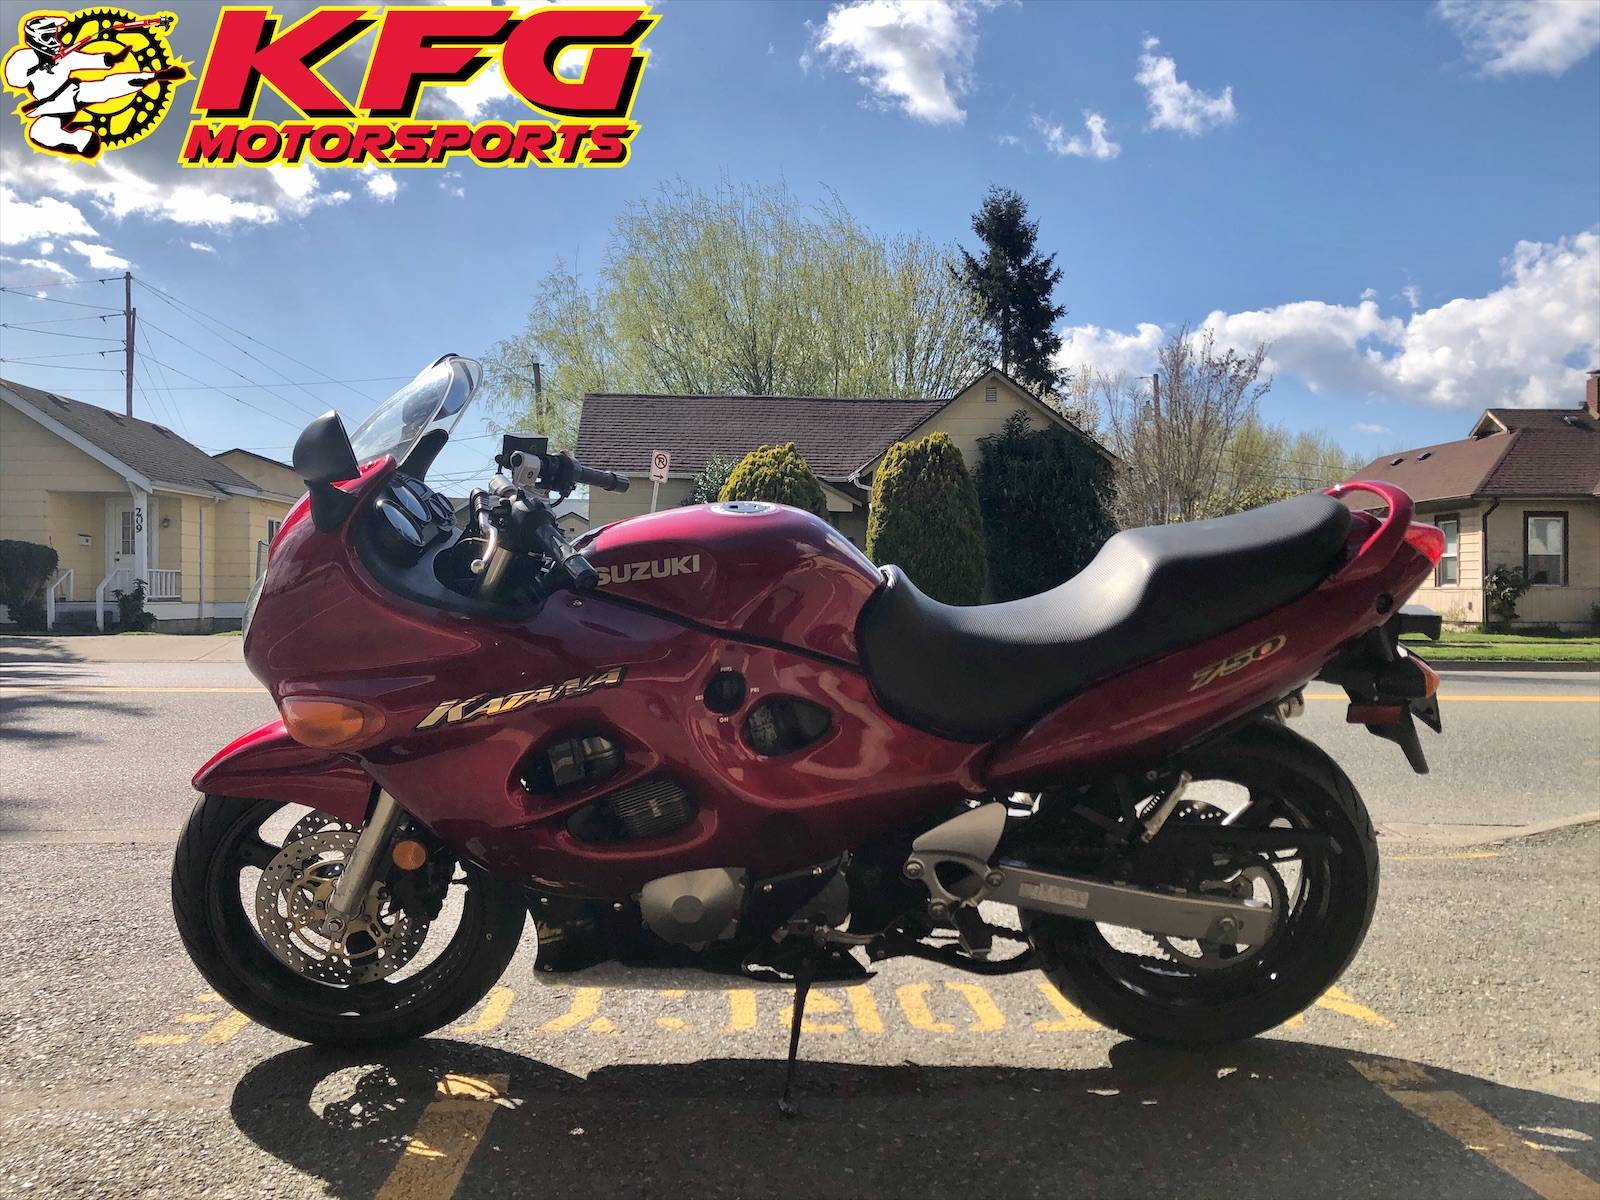 2000 Suzuki Katana 750 in Auburn, Washington - Photo 2